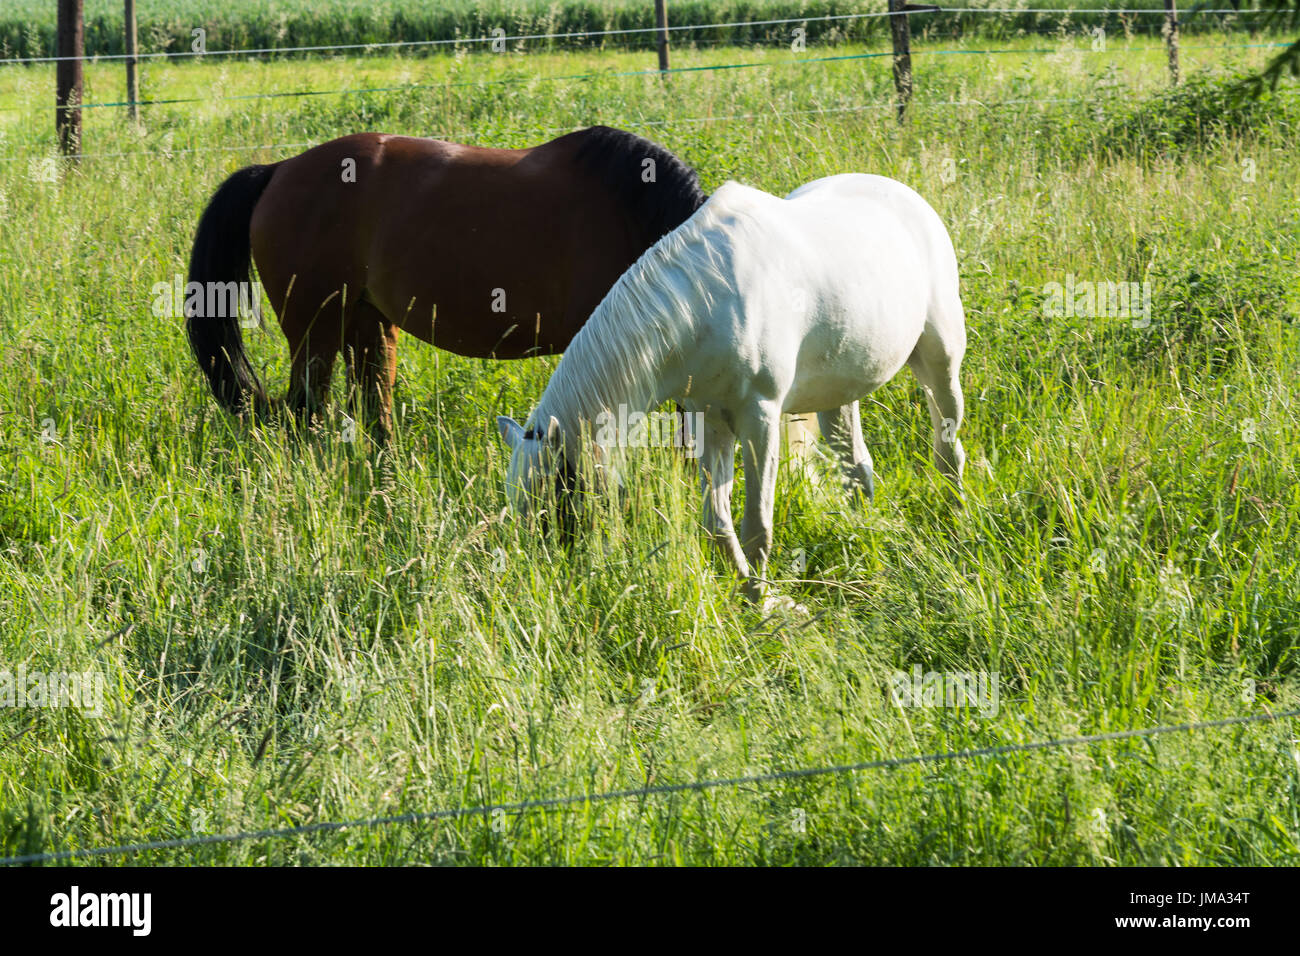 White and brown horse on a horse paddock. - Stock Image